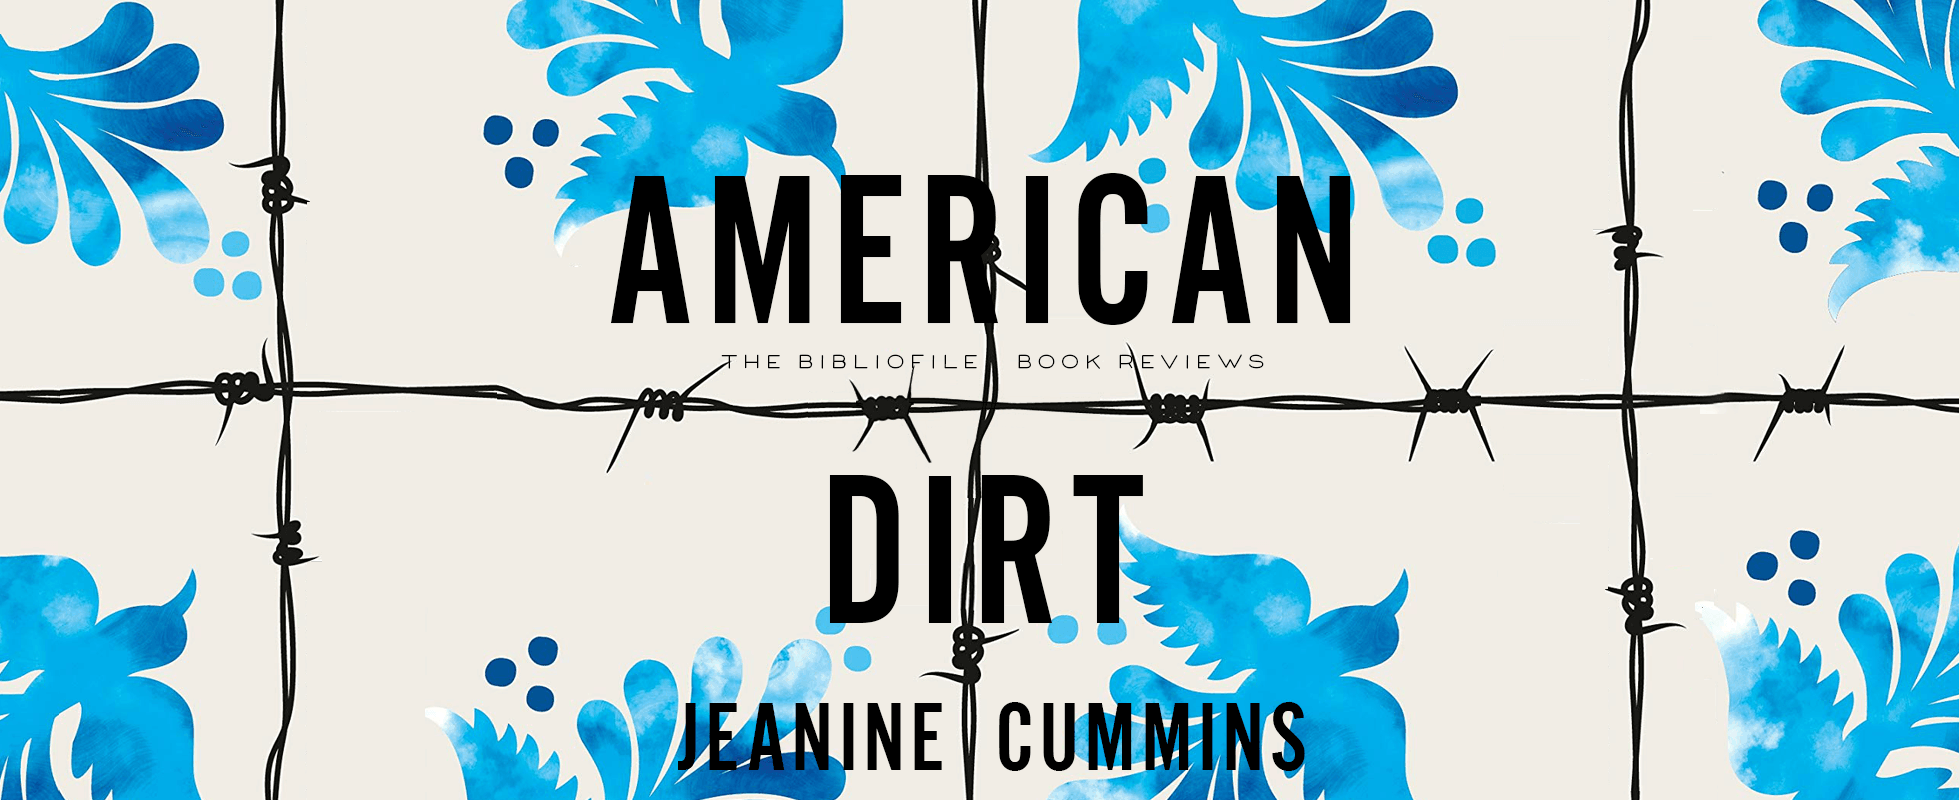 american dirt jeanine cummins book review plot summary synopsis